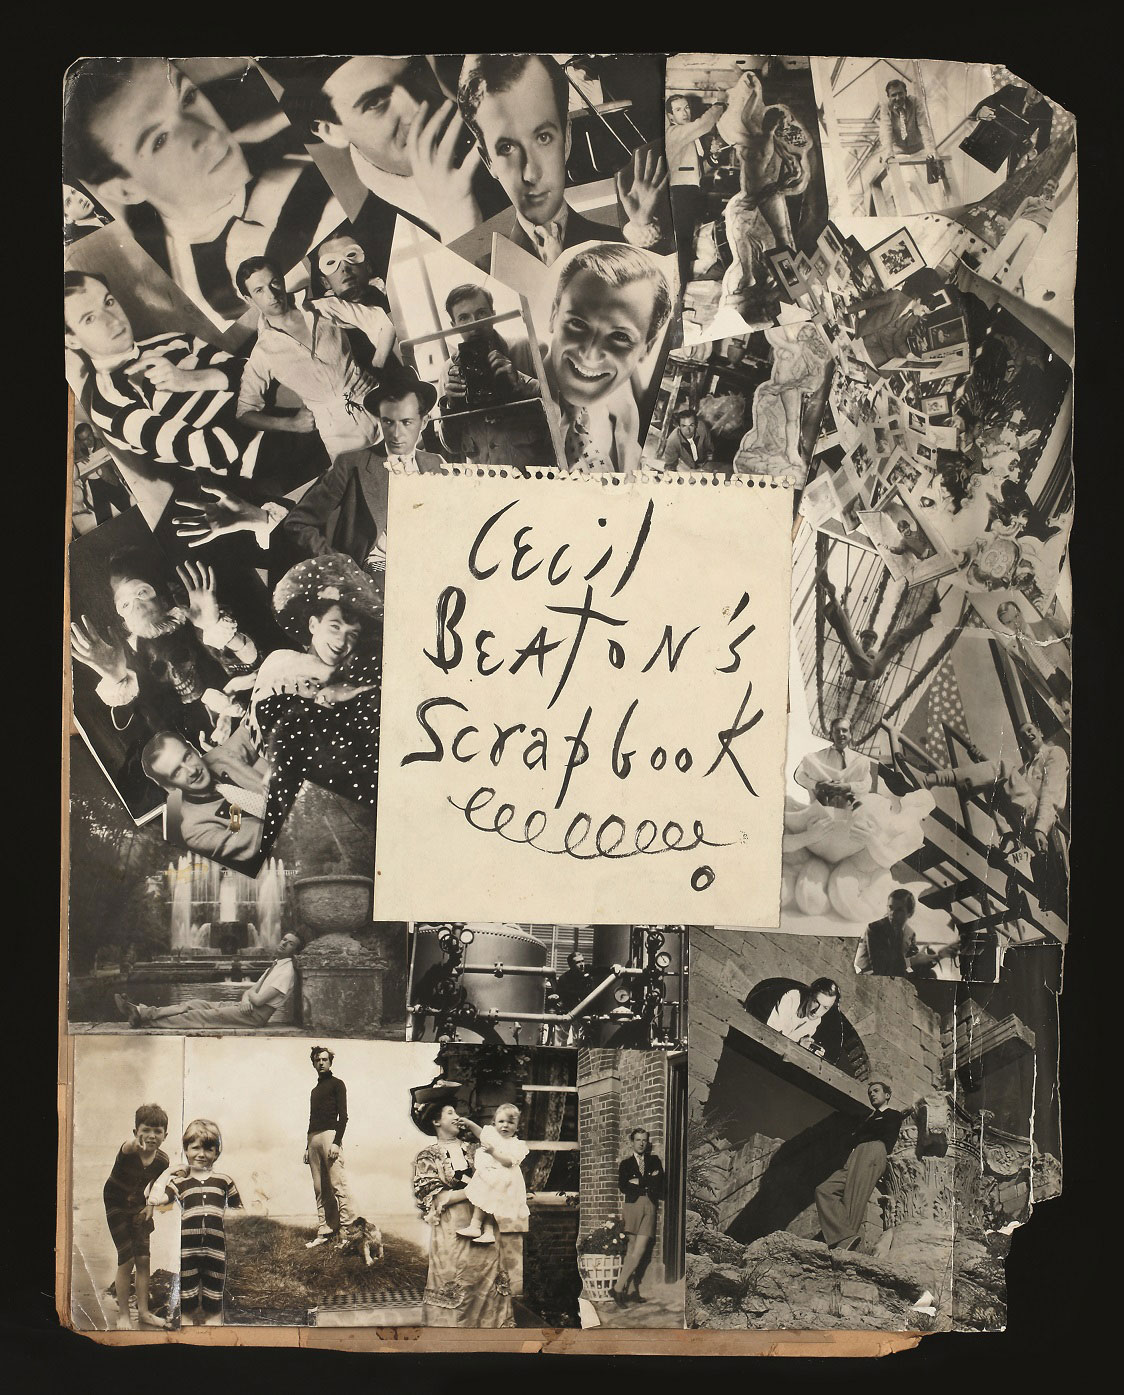 Cecil Beaton. 'Frontispiece montage for Cecil Beaton's Scrapbook, 1937, Ashcombe' 1937